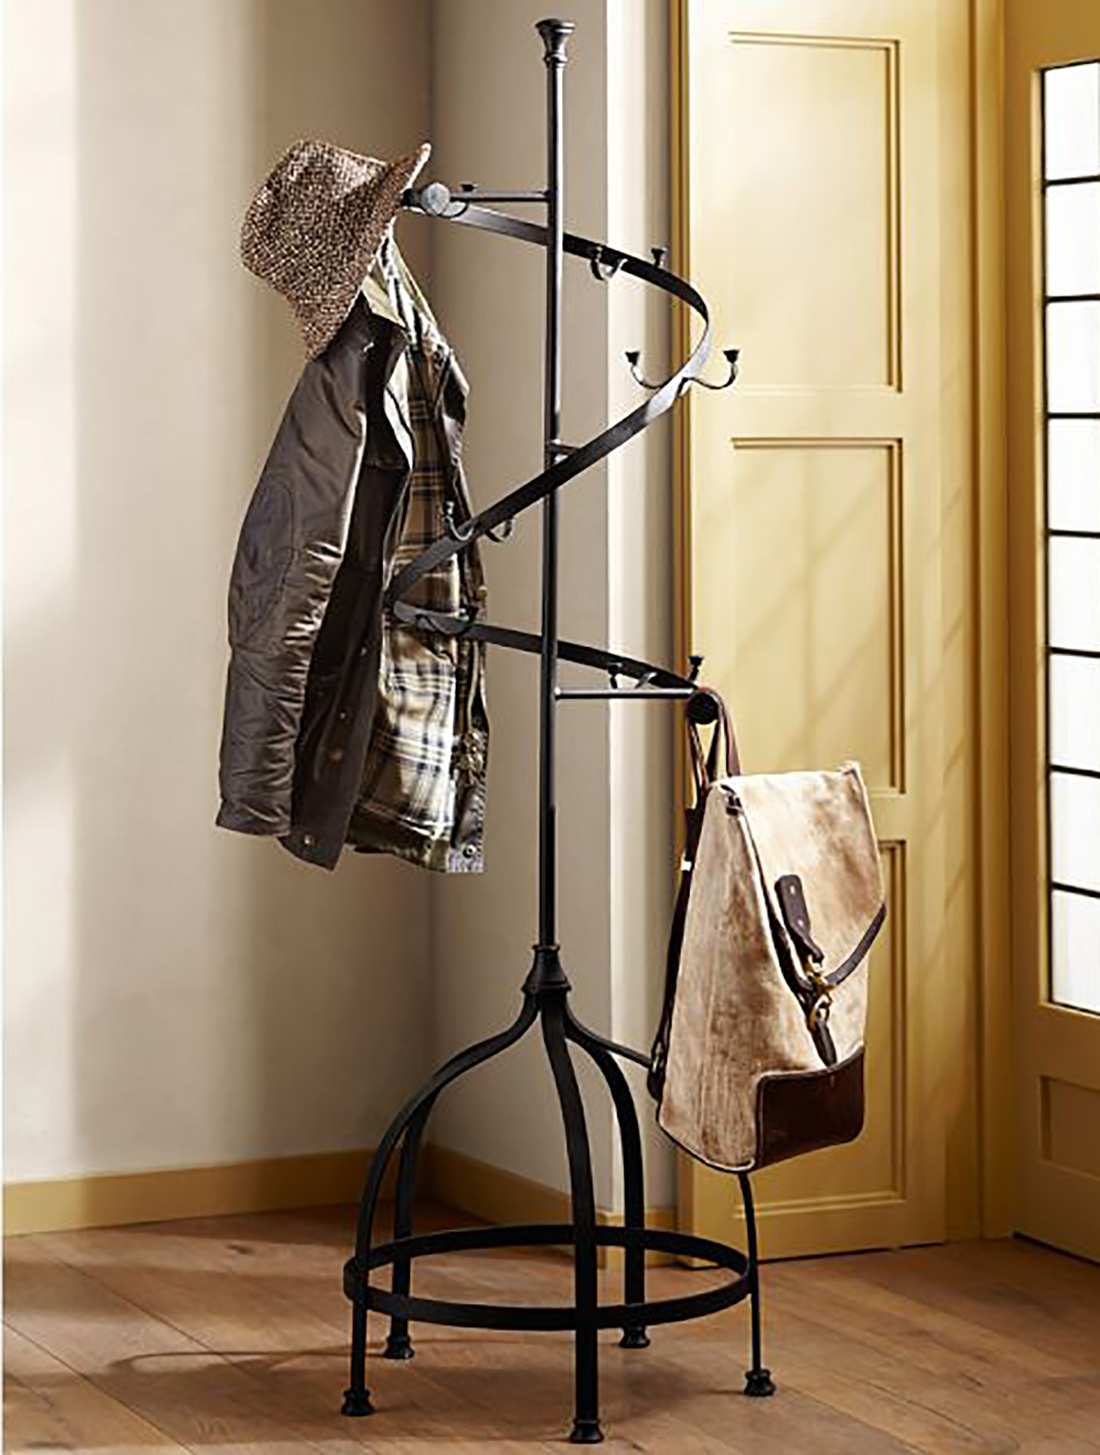 High Quality Gorgeous Black Metal Spiral Coat Rack Ideas With Wooden Floor With Bag  Hooks And Hats Aside